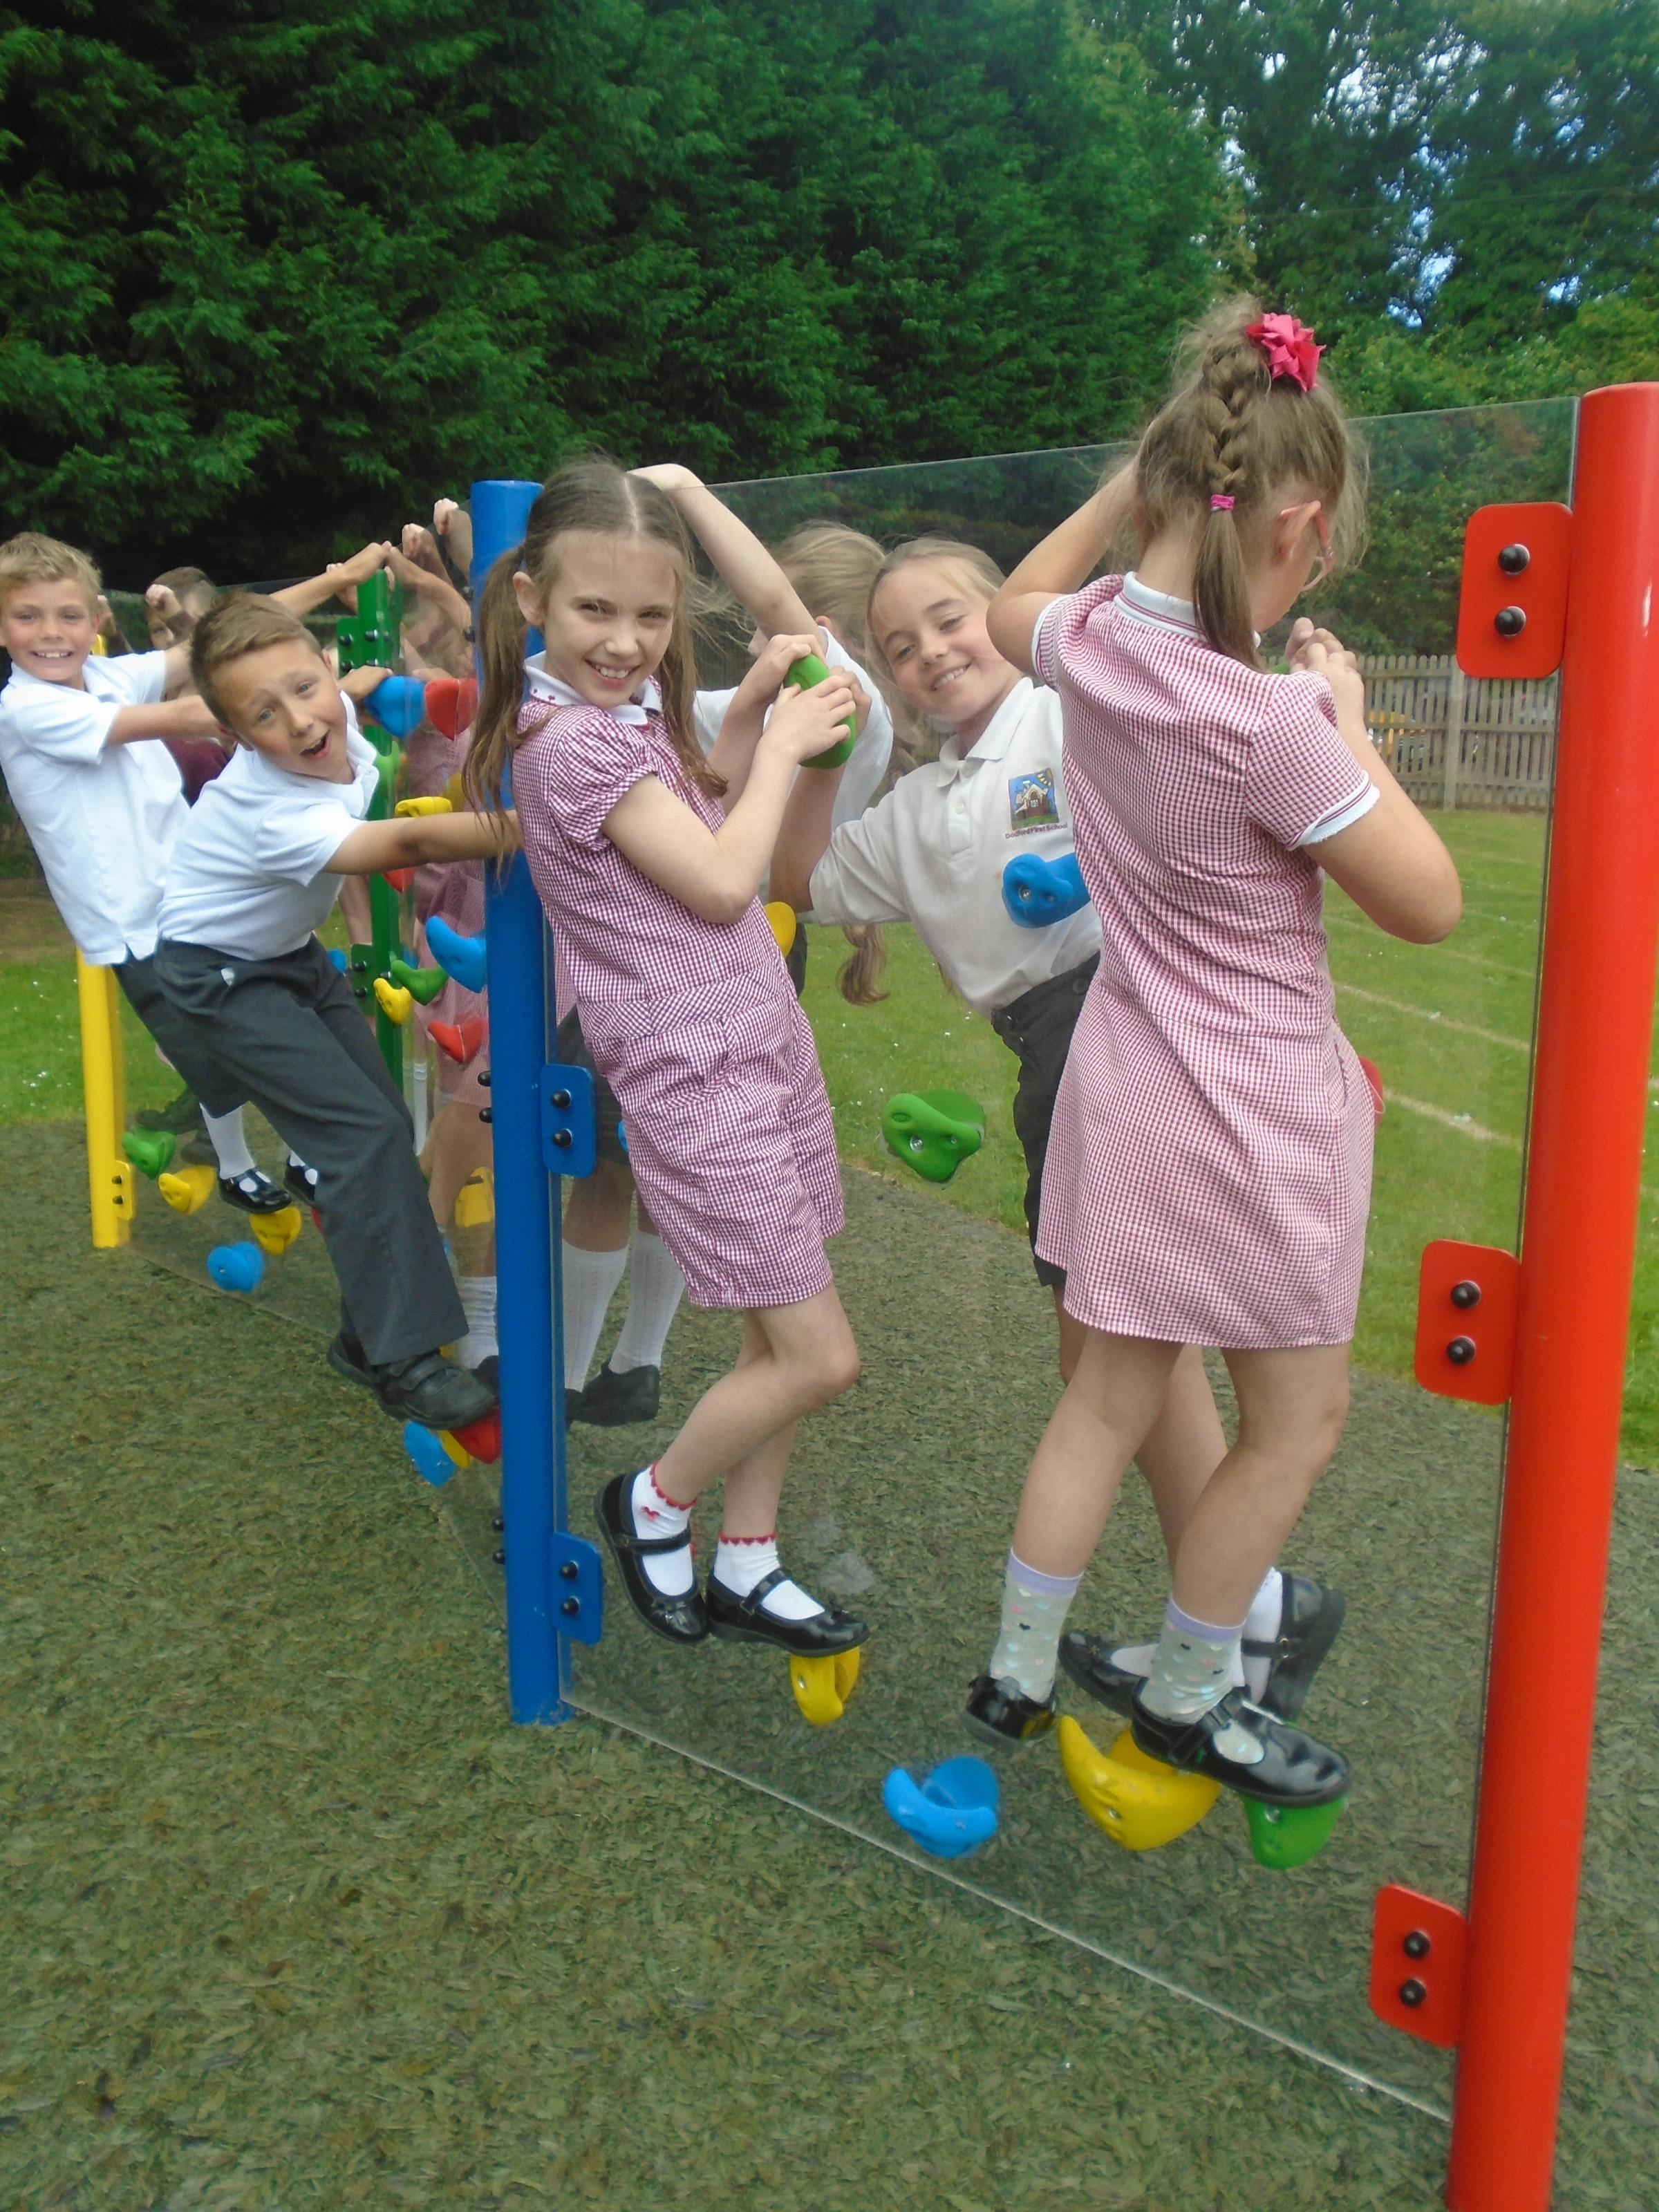 Year 4 children using the climbing wall